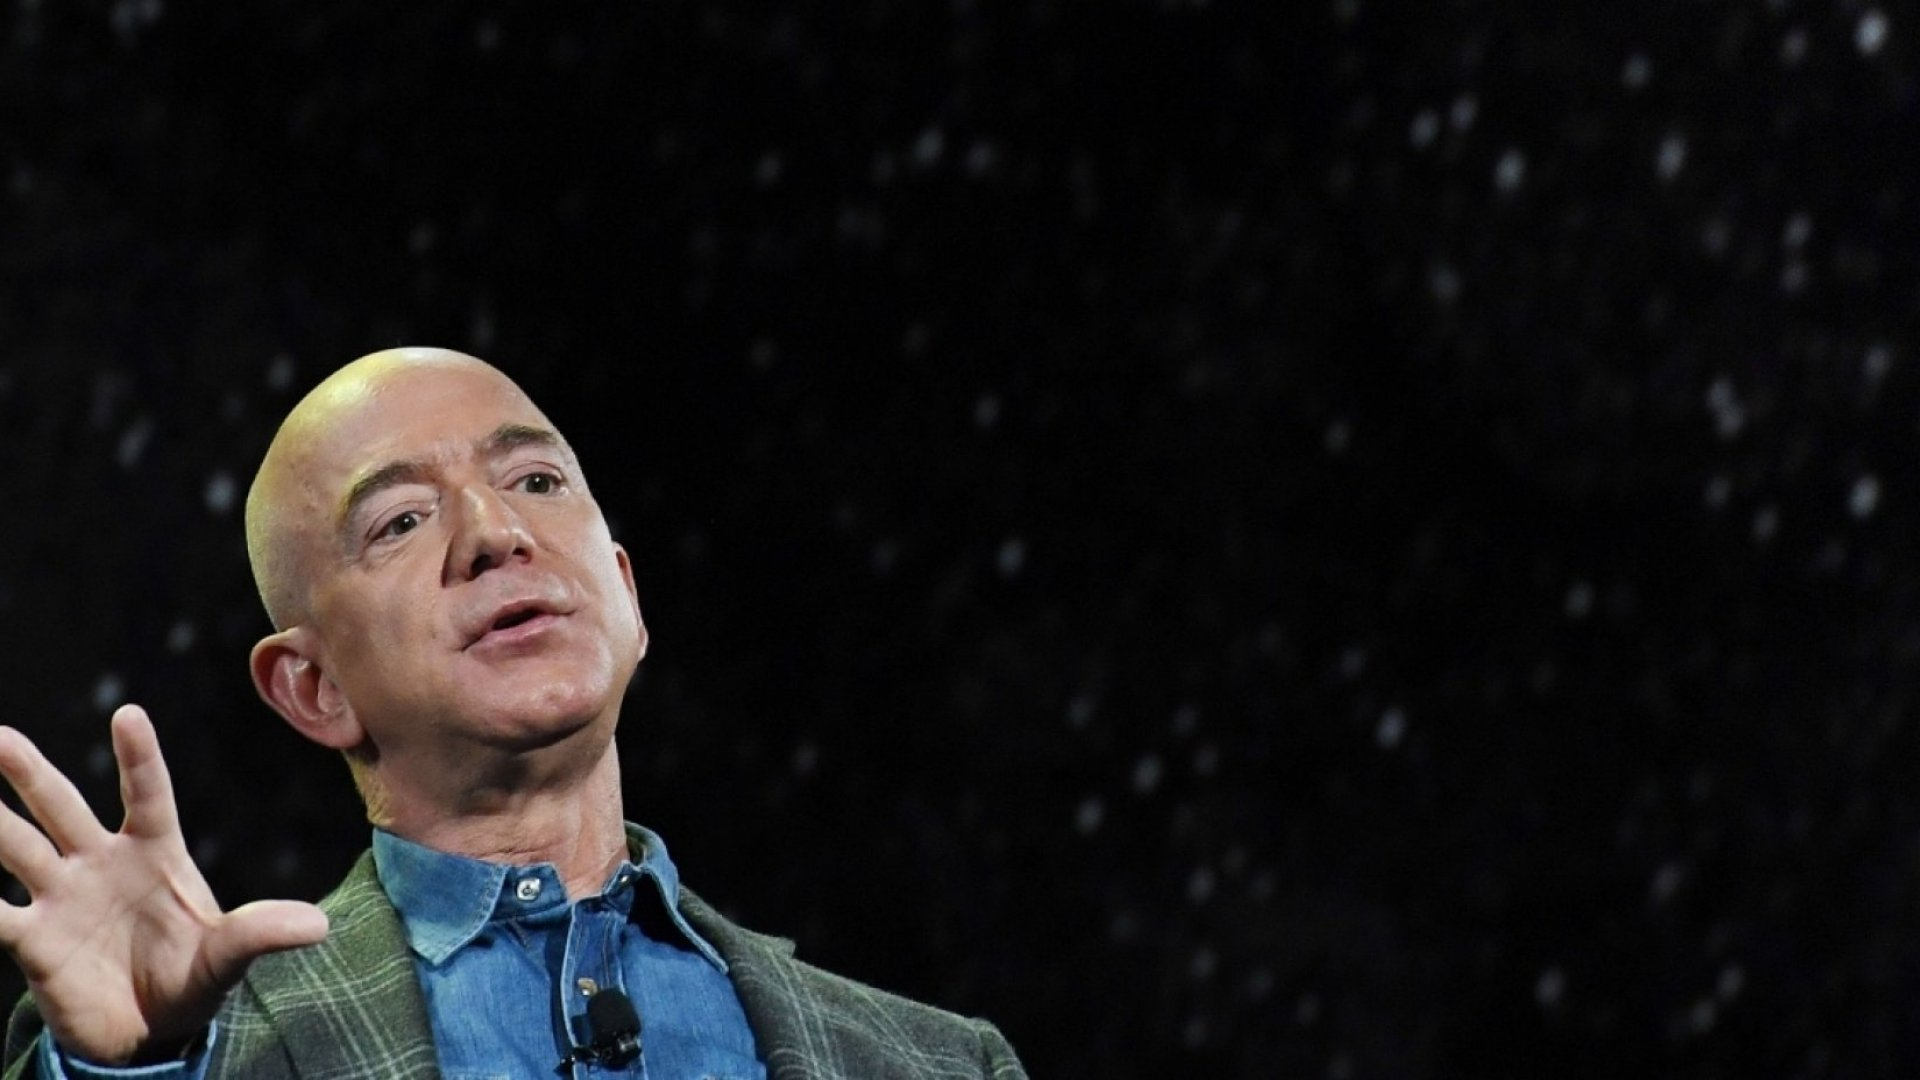 These Are the 7 Things People Must Do to Be Successful, According to Jeff Bezos